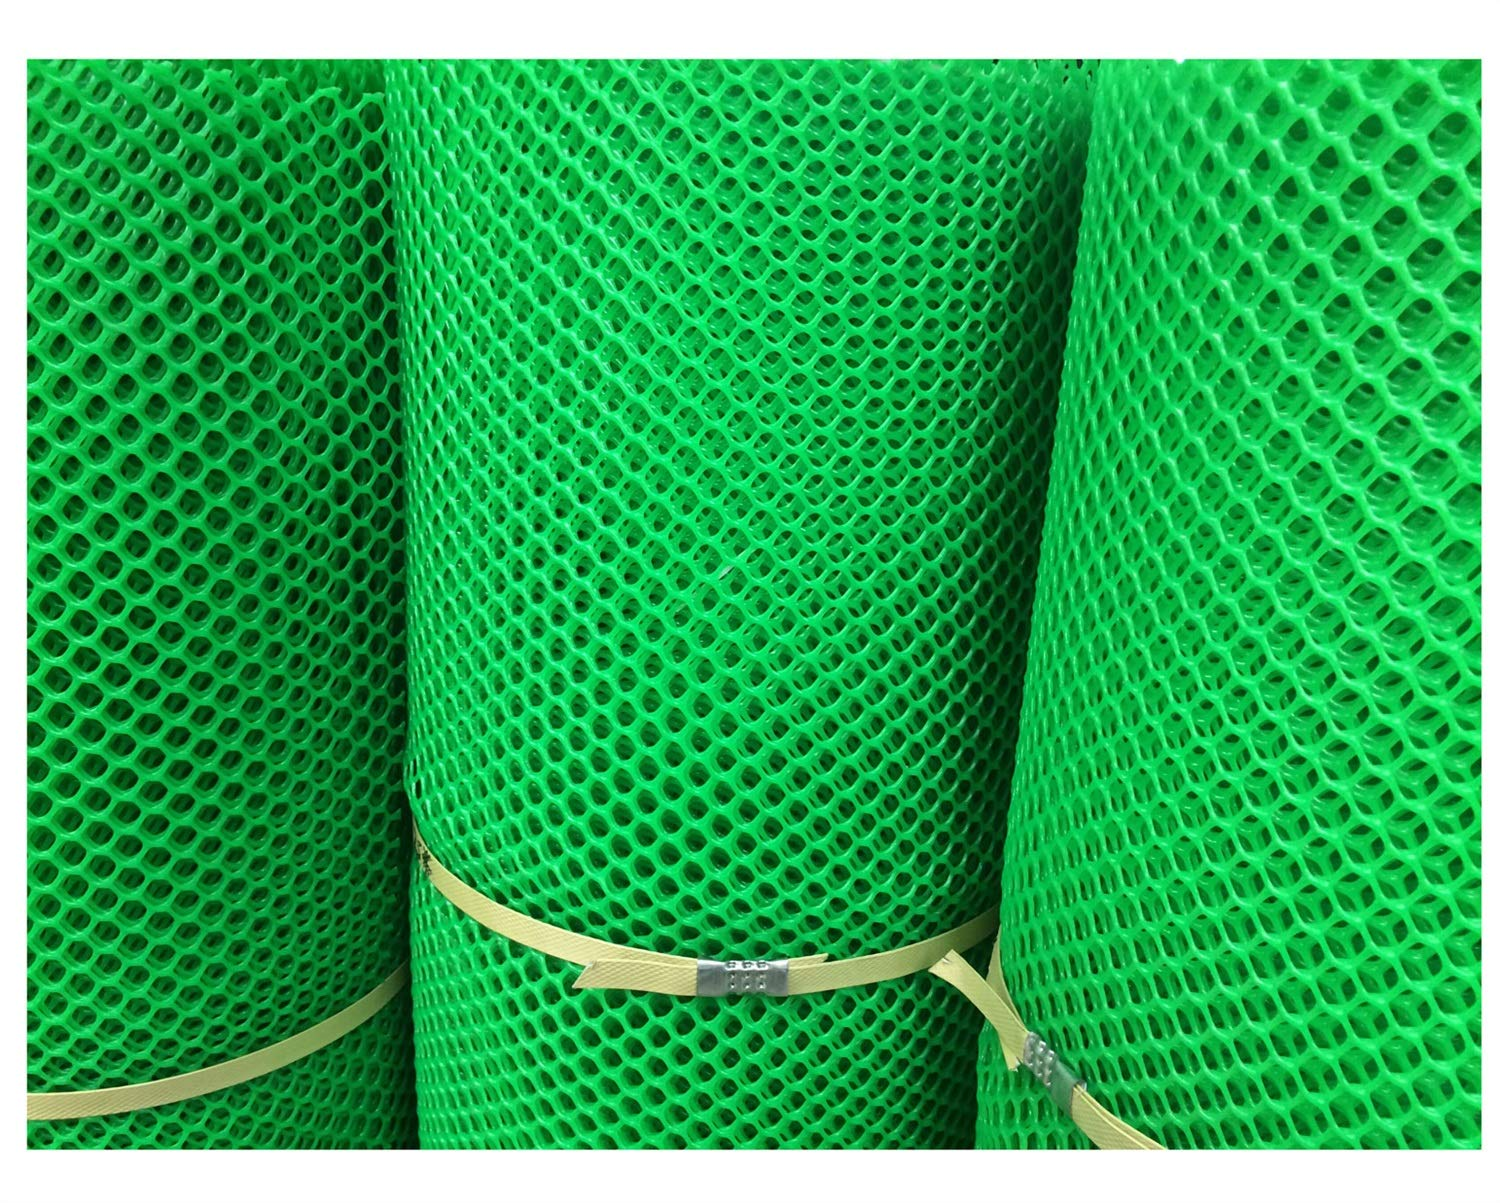 Grass Protection Mesh for Lawn or Car Park Reinforcement Green Plastic Child Safety Net Balcony Protection Net Stairs Anti-fall Net 10m 20m 30m 50m (Size : 2 * 50m) NNFHW ♦ Plastic safety mesh with a diameter of 1.8cm prevents children's head and body from falling through the railing and prevents toys and shoes from falling from the gap between the armrests. It can even be used as a pet safety door. Provide a safe gaming environment for children. ♦ Lawn protective grilles are used to reinforce large areas of flat surfaces, especially parks and lawn areas, slopes and embankments. The turf grid increases the load-bearing capacity of the soil. Effectively prevents the formation of ruts. Suitable for short-term parking, driveways, etc. ♦ Plastic flat net waterproof, wear-resistant, tough, light weight, long service life, non-toxic and tasteless, high transparency. Ideal for interior and exterior of residential buildings such as railings, stairs, cots, hallways, balconies, etc. The honeycomb design does not interfere with your view. 5